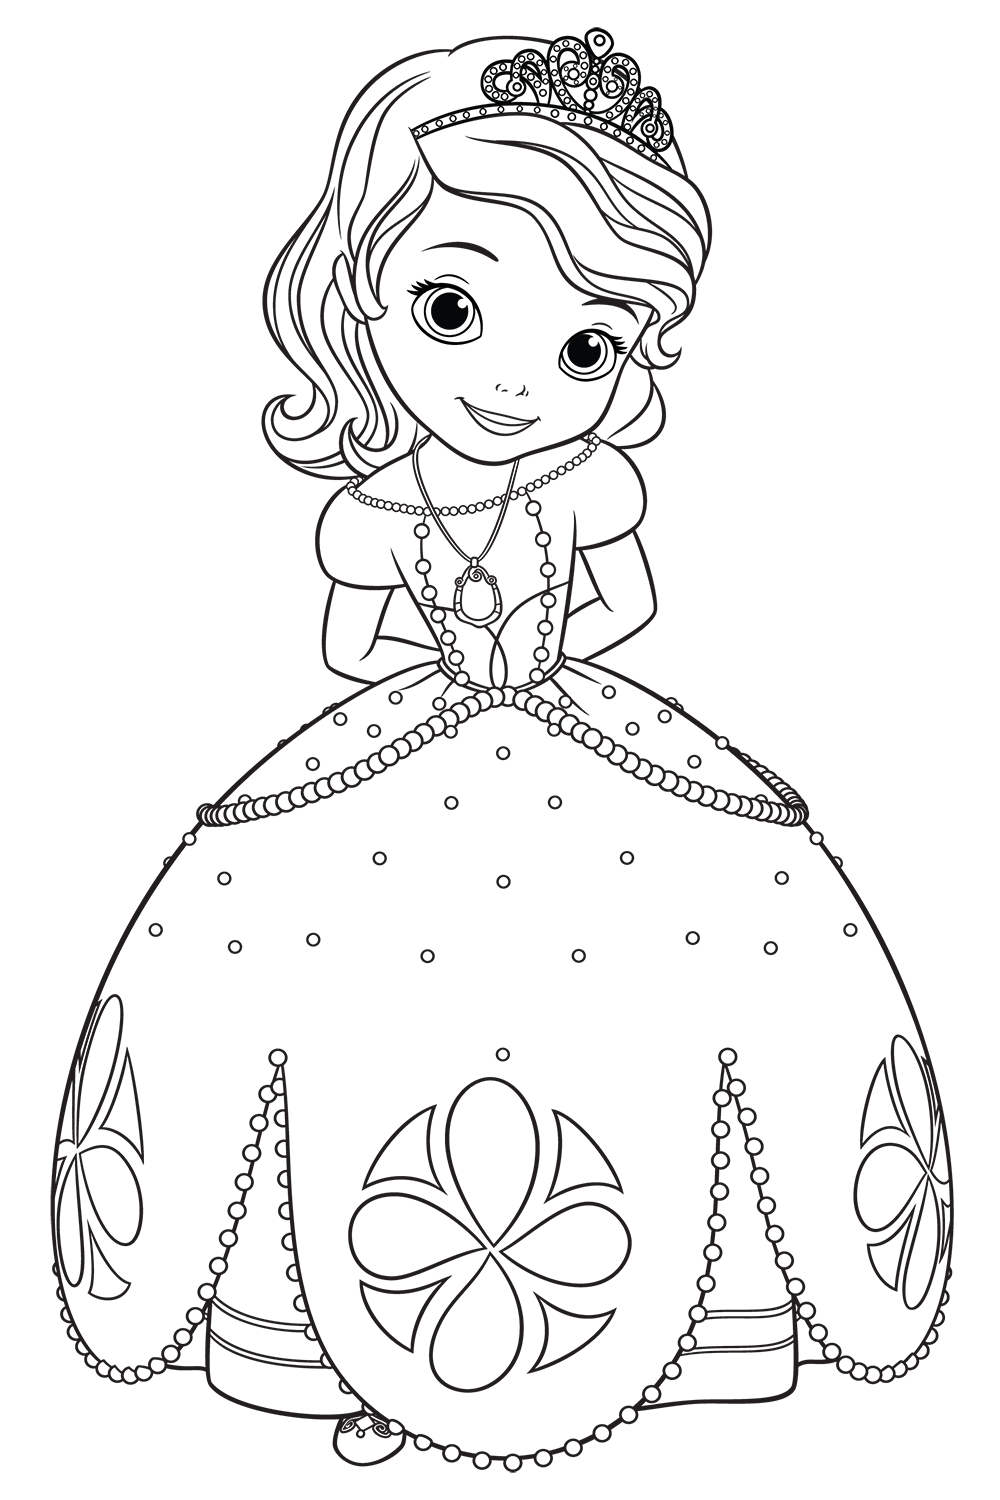 quot Sofia the First quot coloring pages